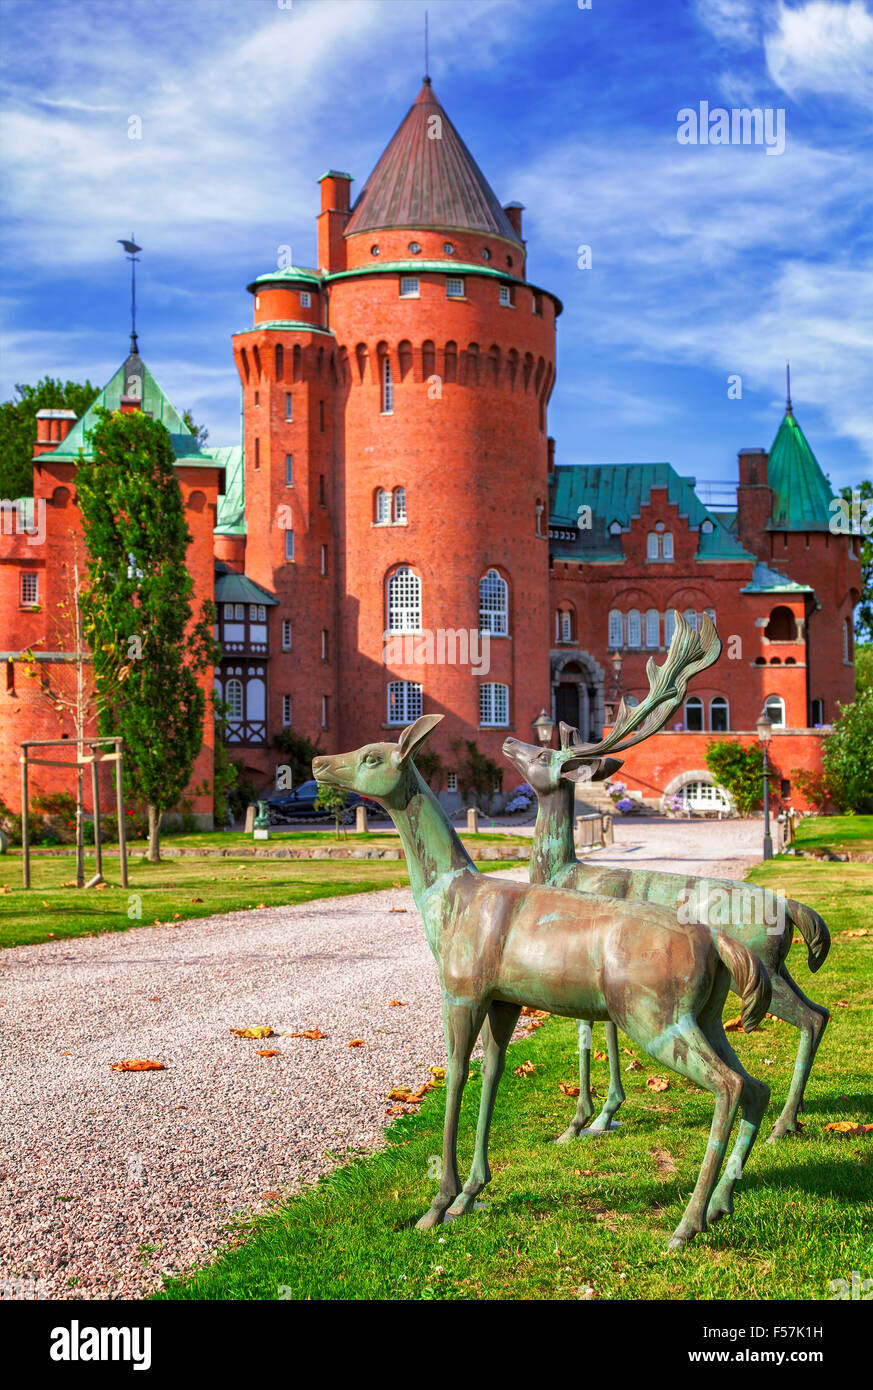 Image of the castle of Hjularod in Sweden, built in a french medieval romance style. - Stock Image